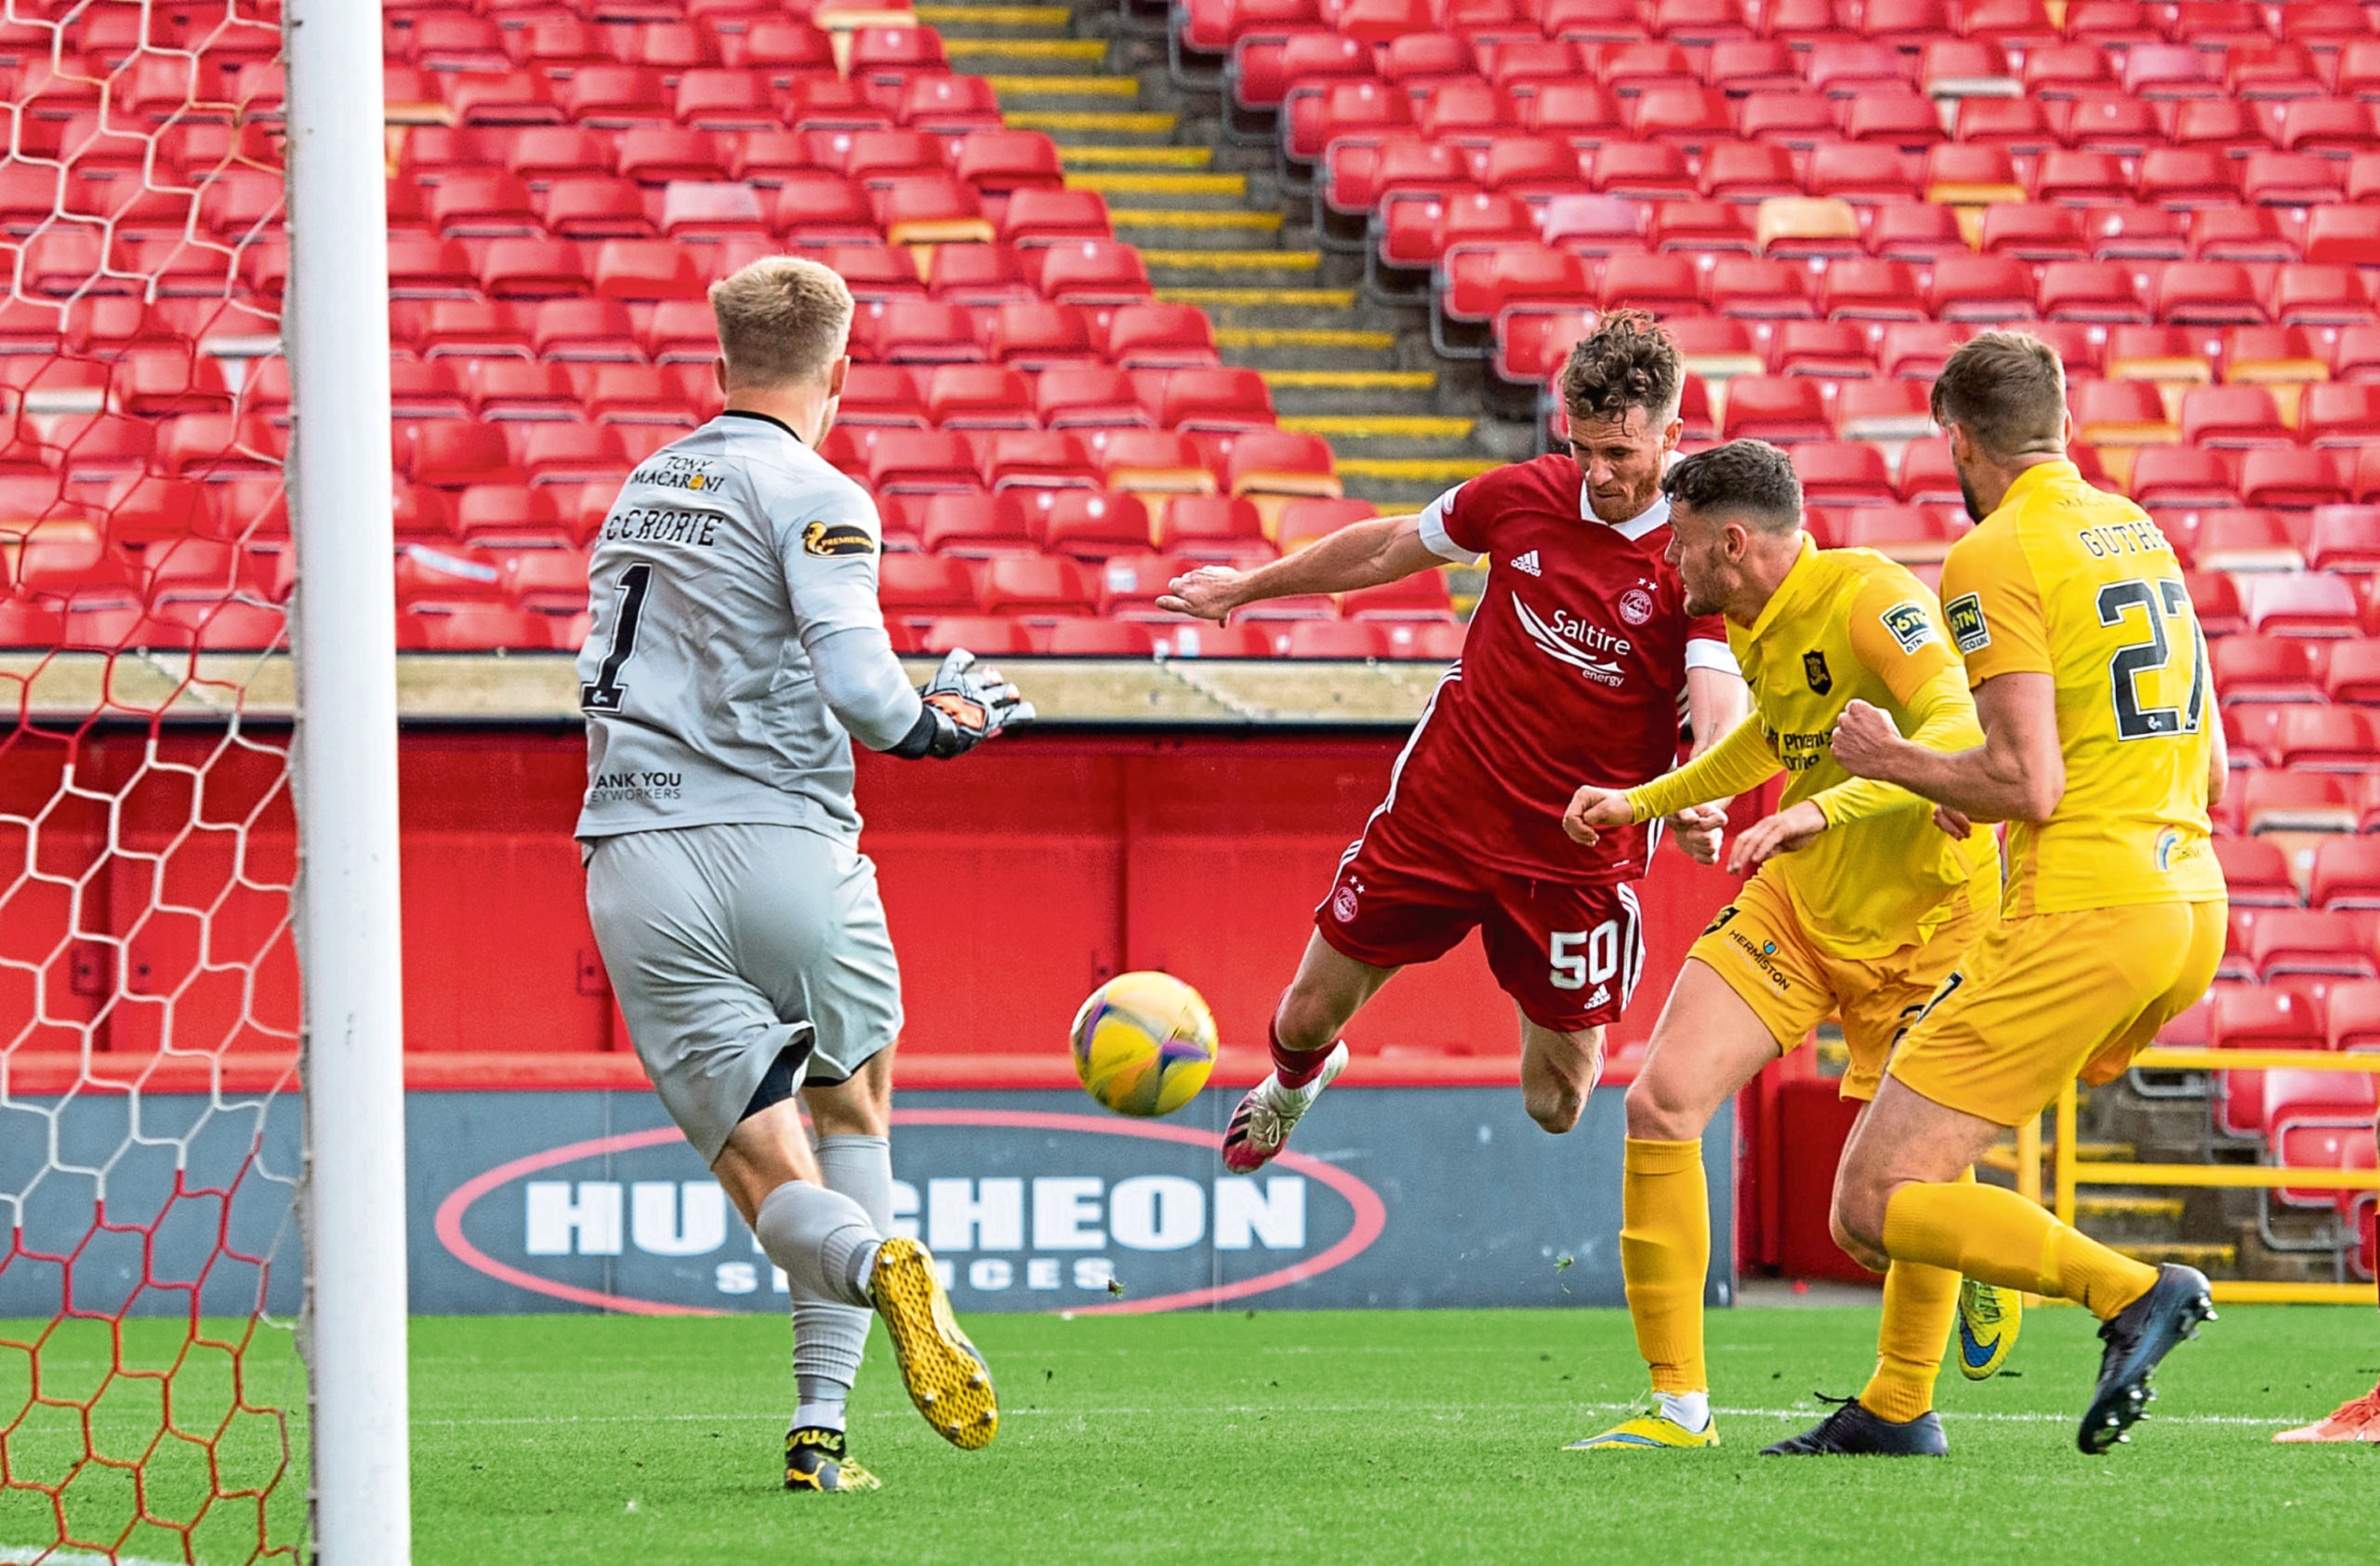 Watkins has come close in his previous Dons appearances.